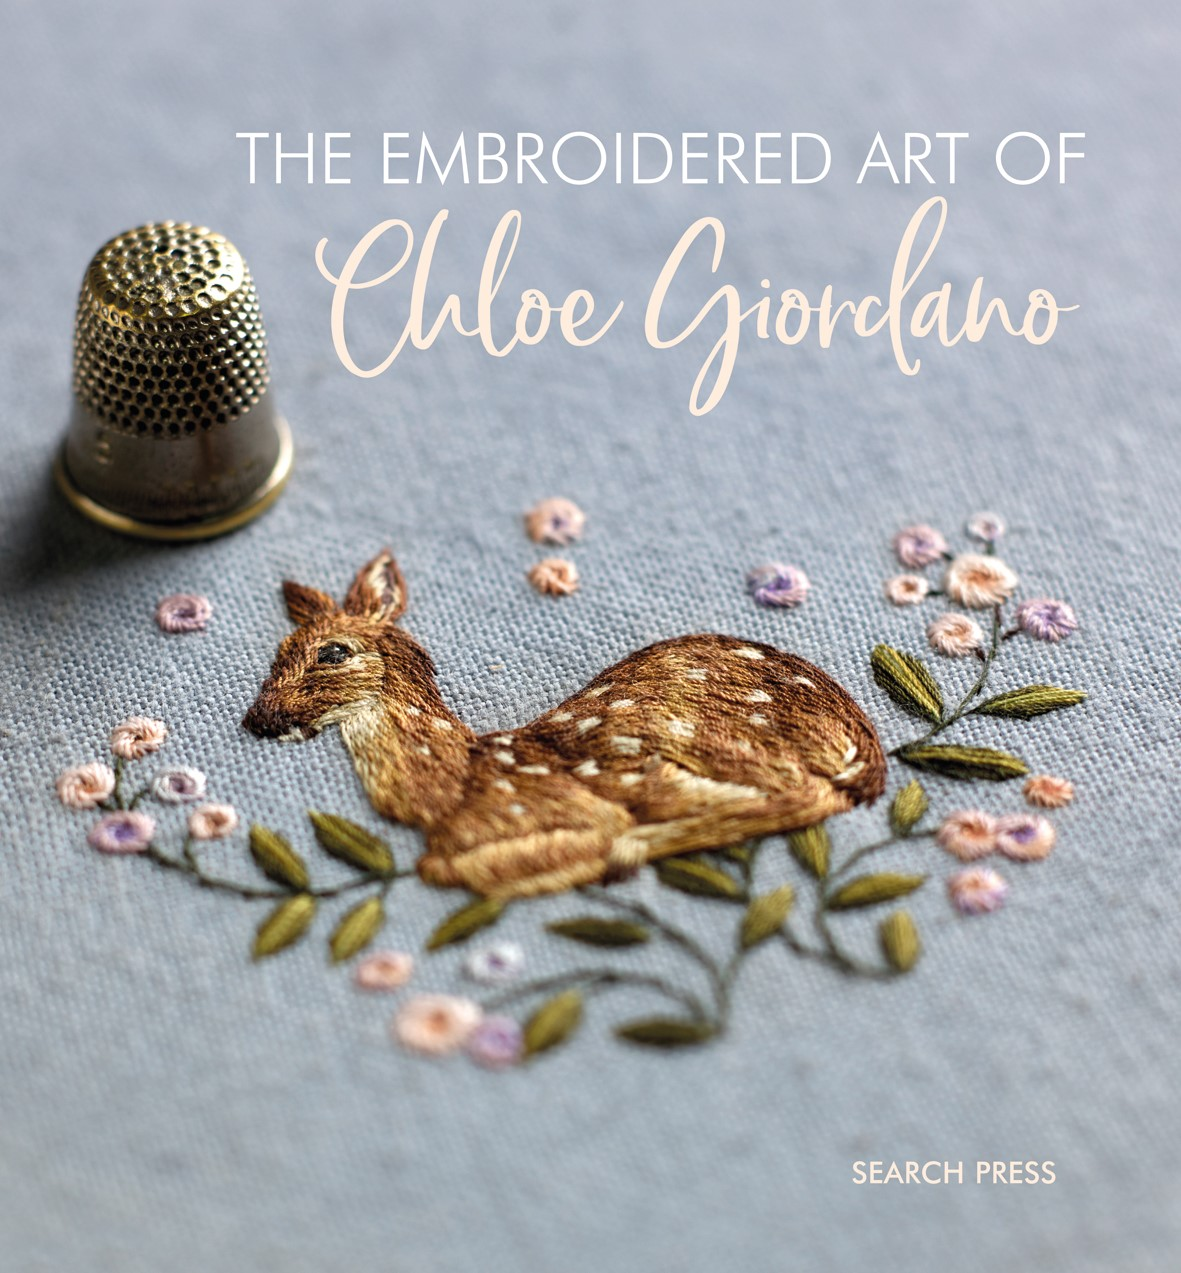 The embroidered art of Chloe Giordano cover